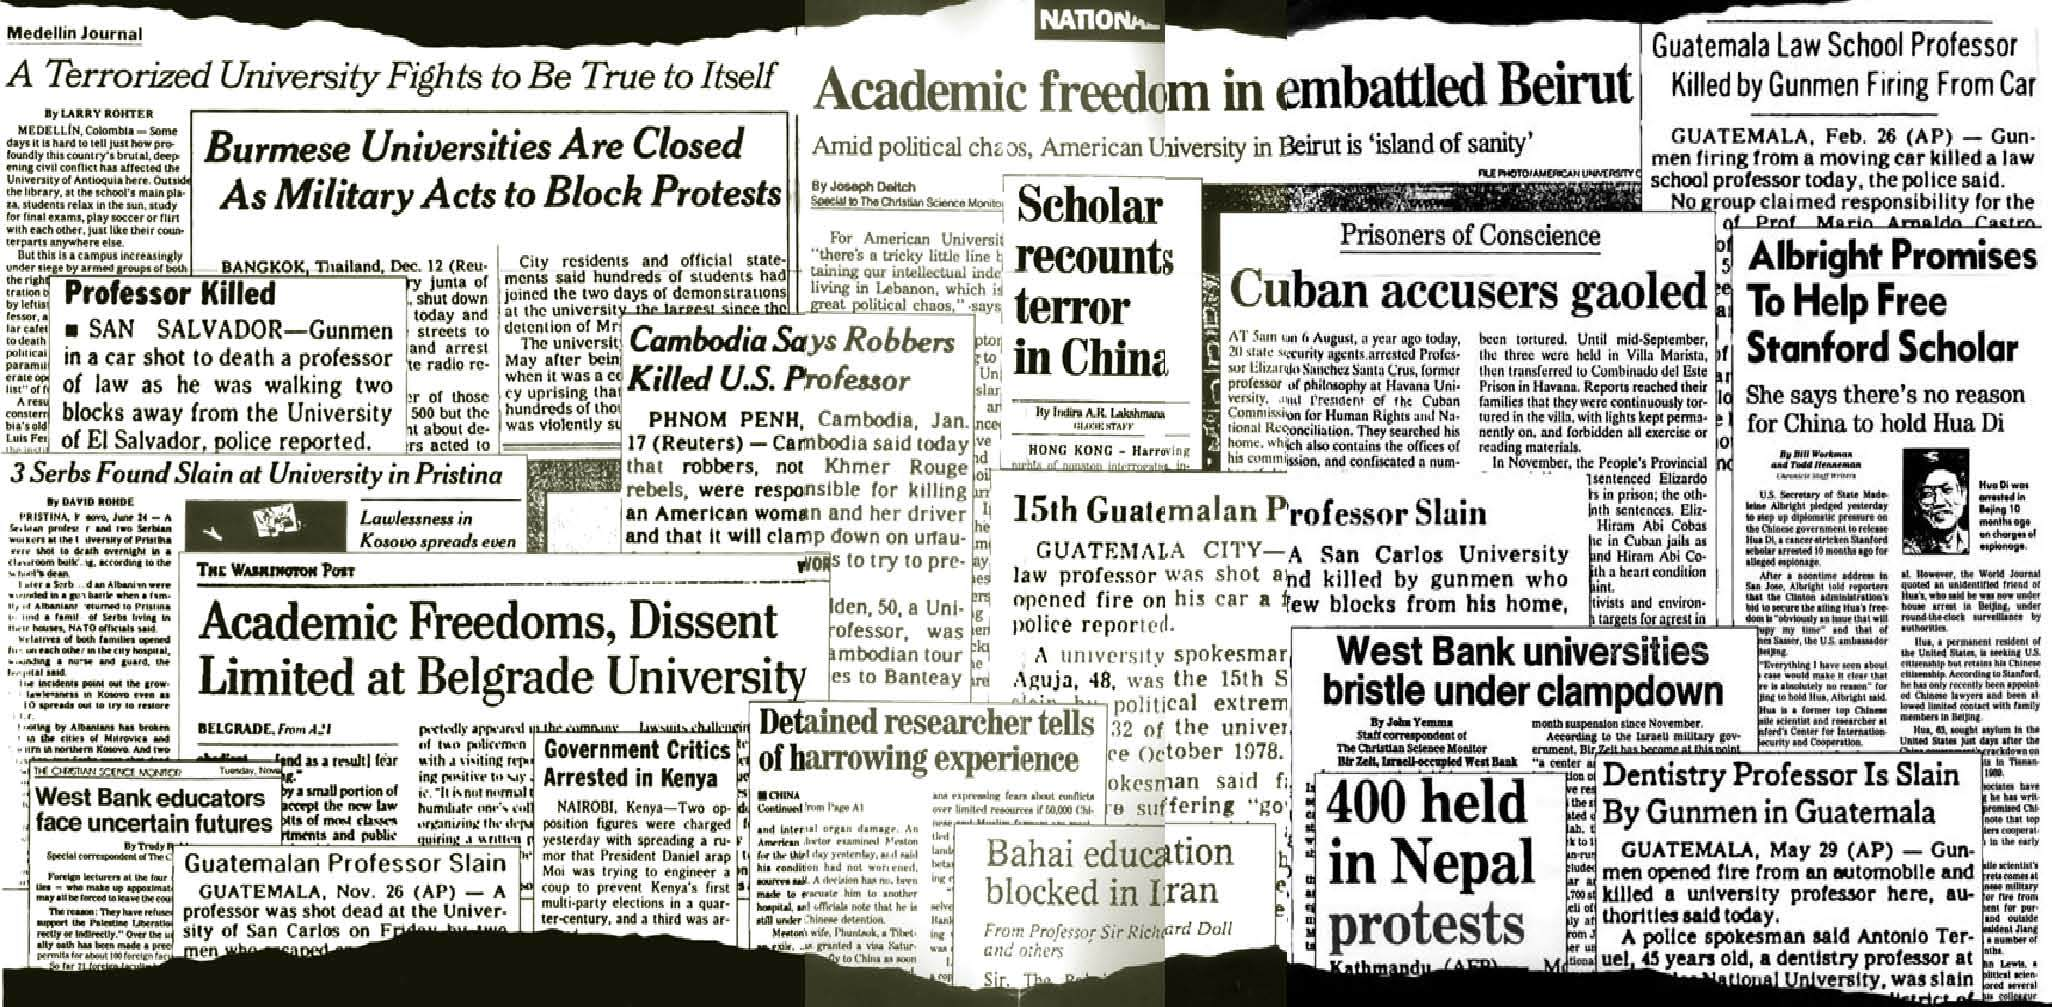 Collage of newspaper headlines about academic freedom from around the world